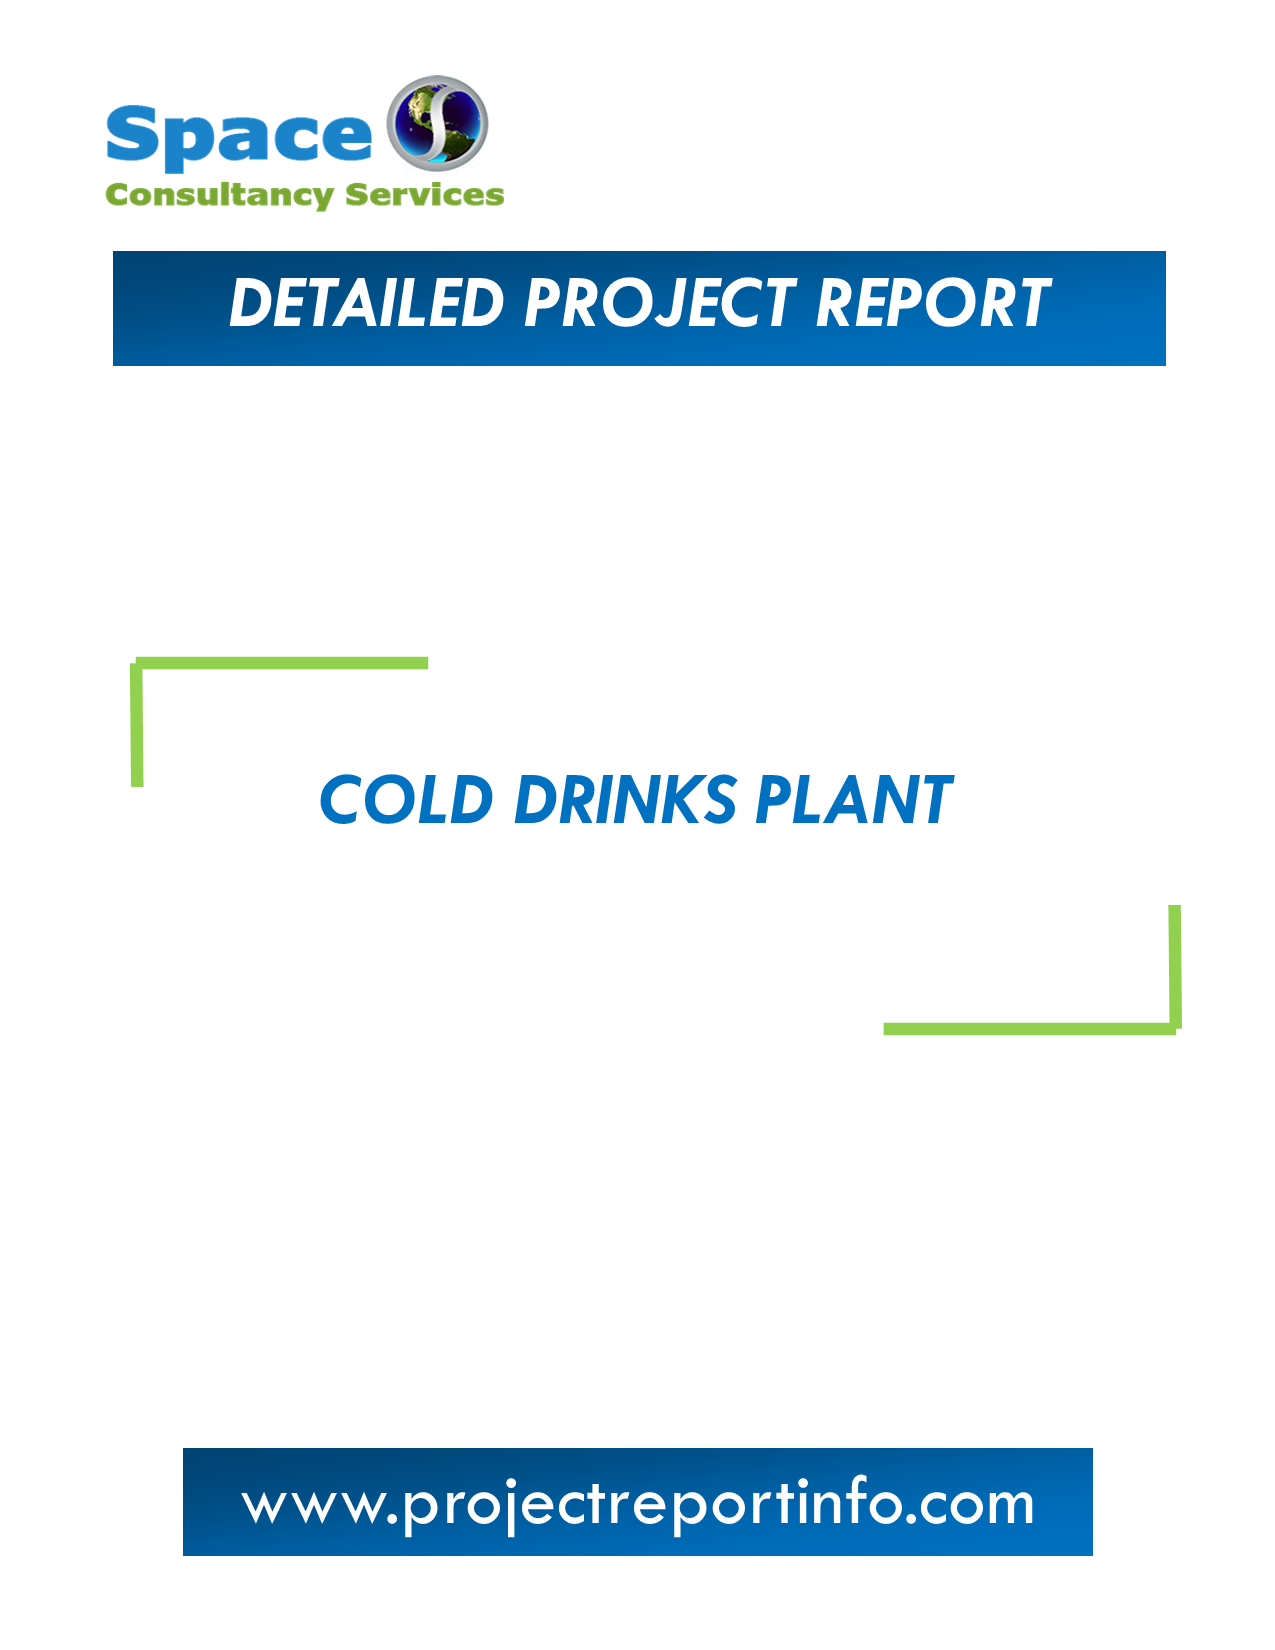 Project Report on Cold Drinks Plant